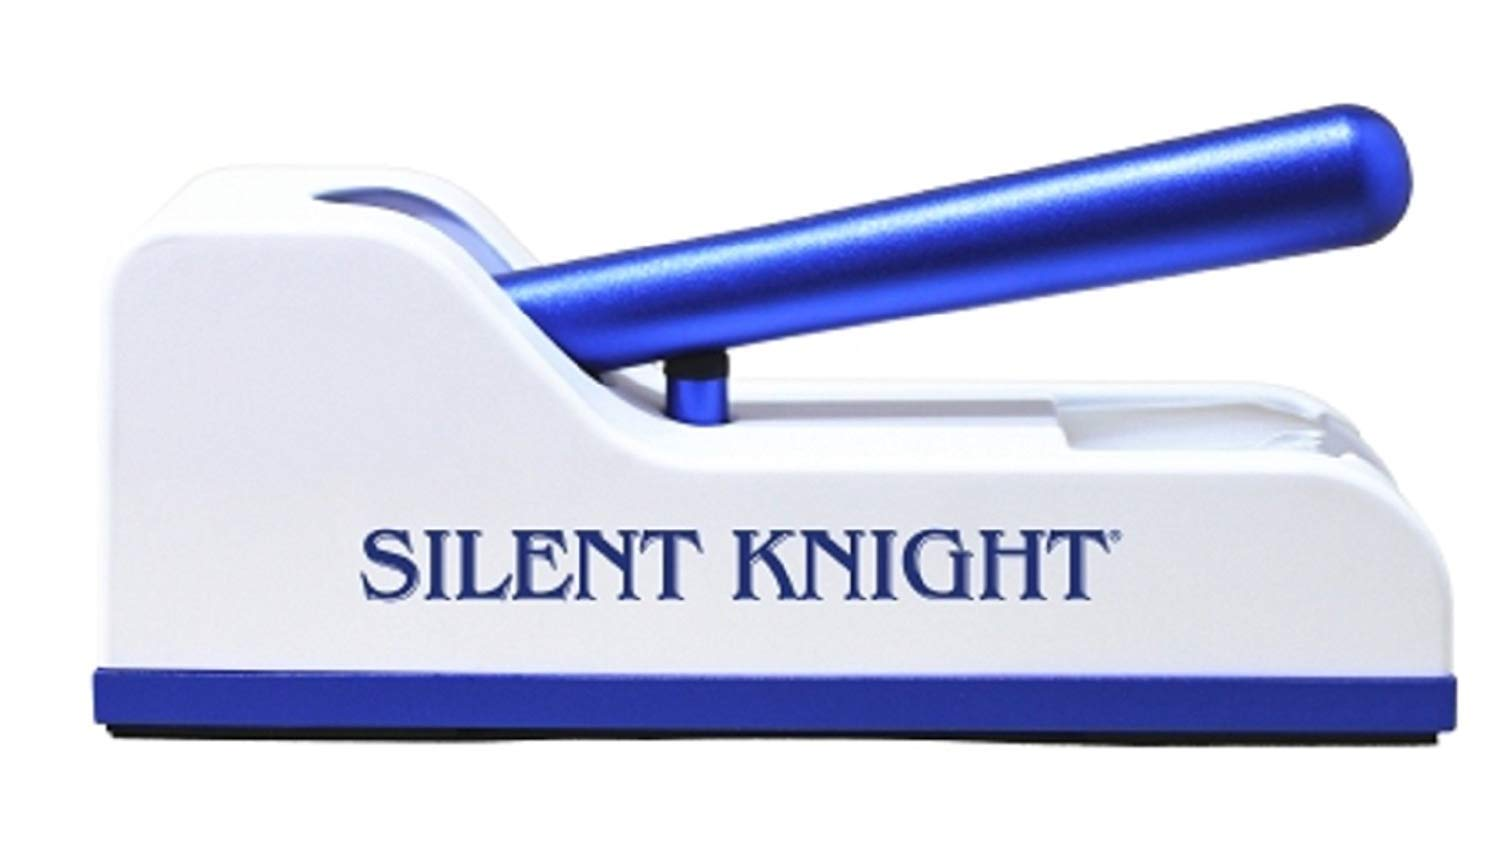 Silent Knight - Pill Crusher - Hand Operated Push Down Mechanism - Blue / White